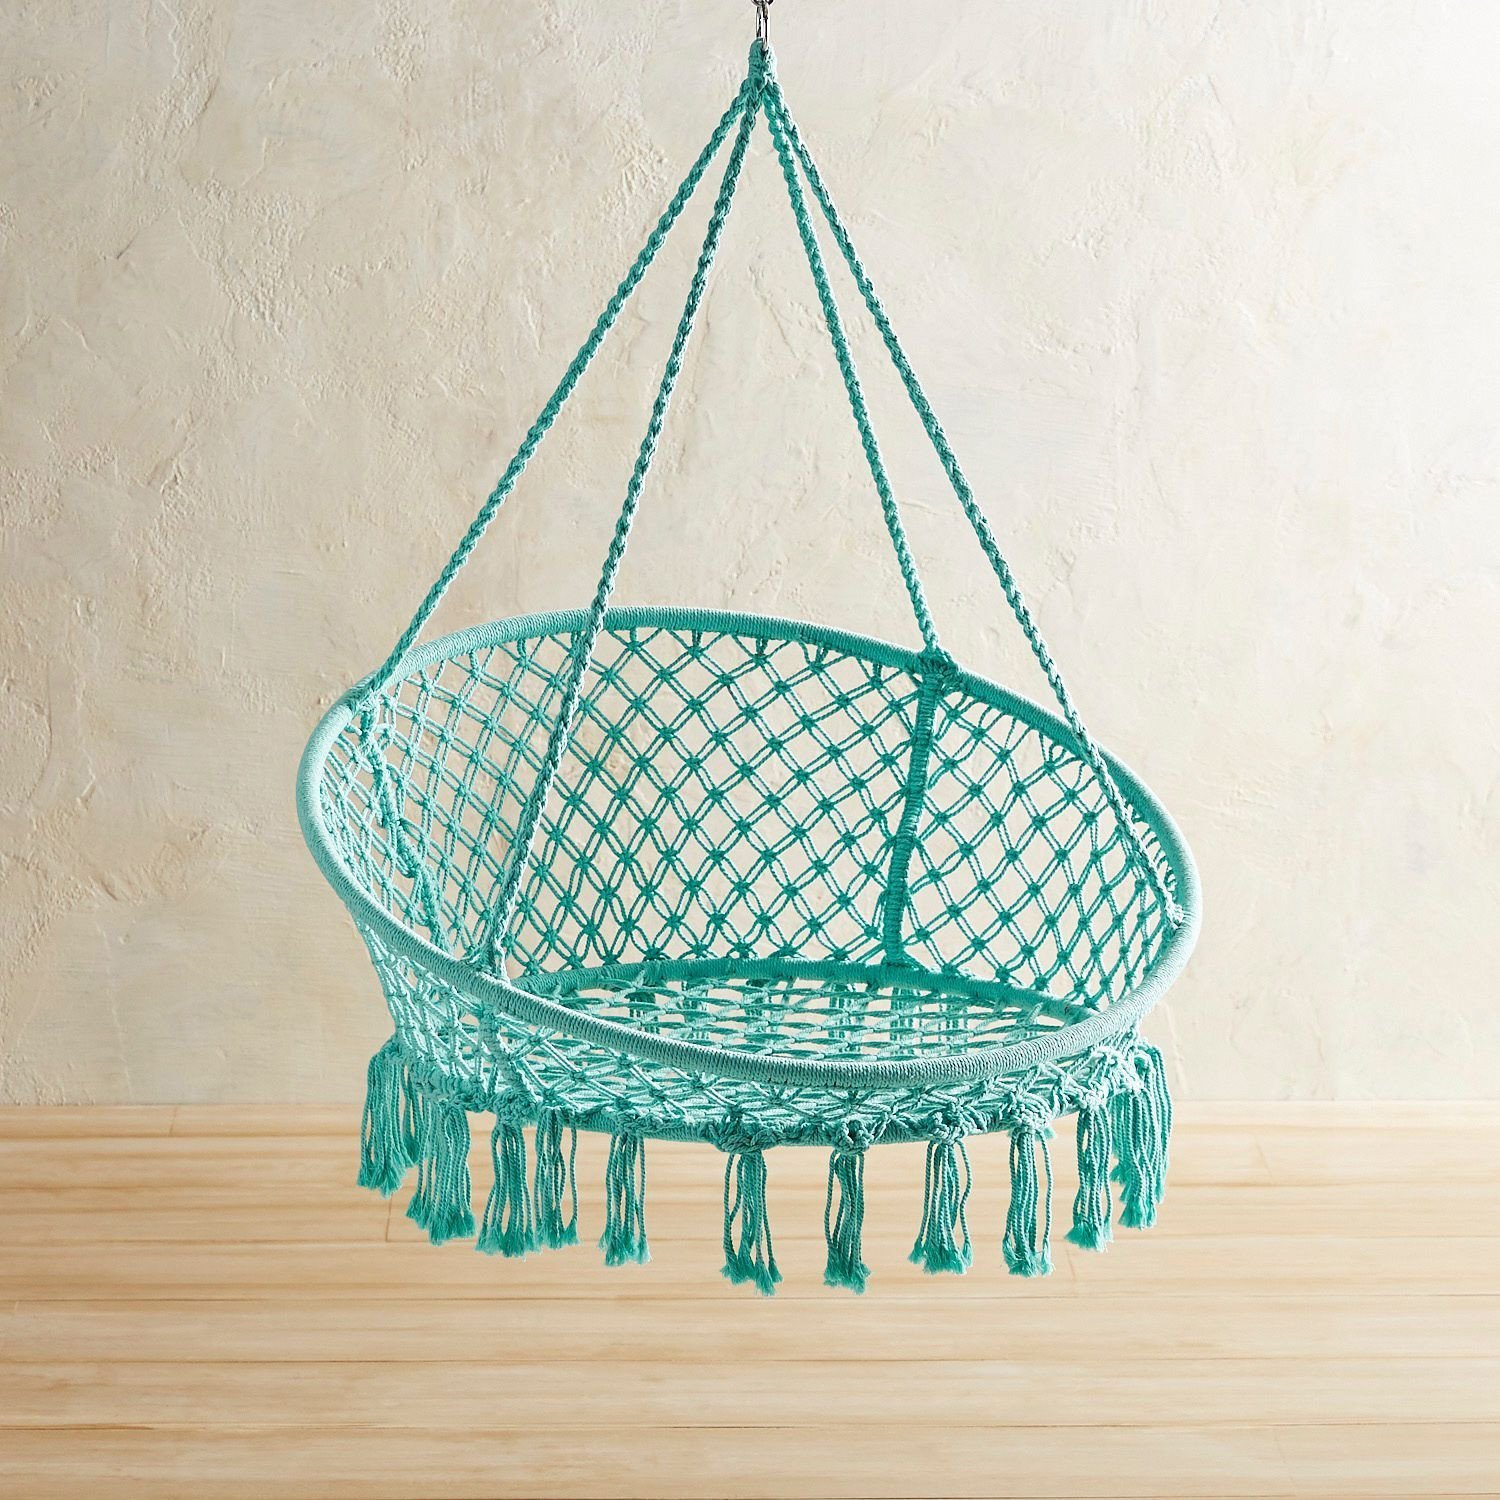 Indoor Hanging Chair for Bedroom Awesome Turquoise Macrame Hanging Saucer Chair